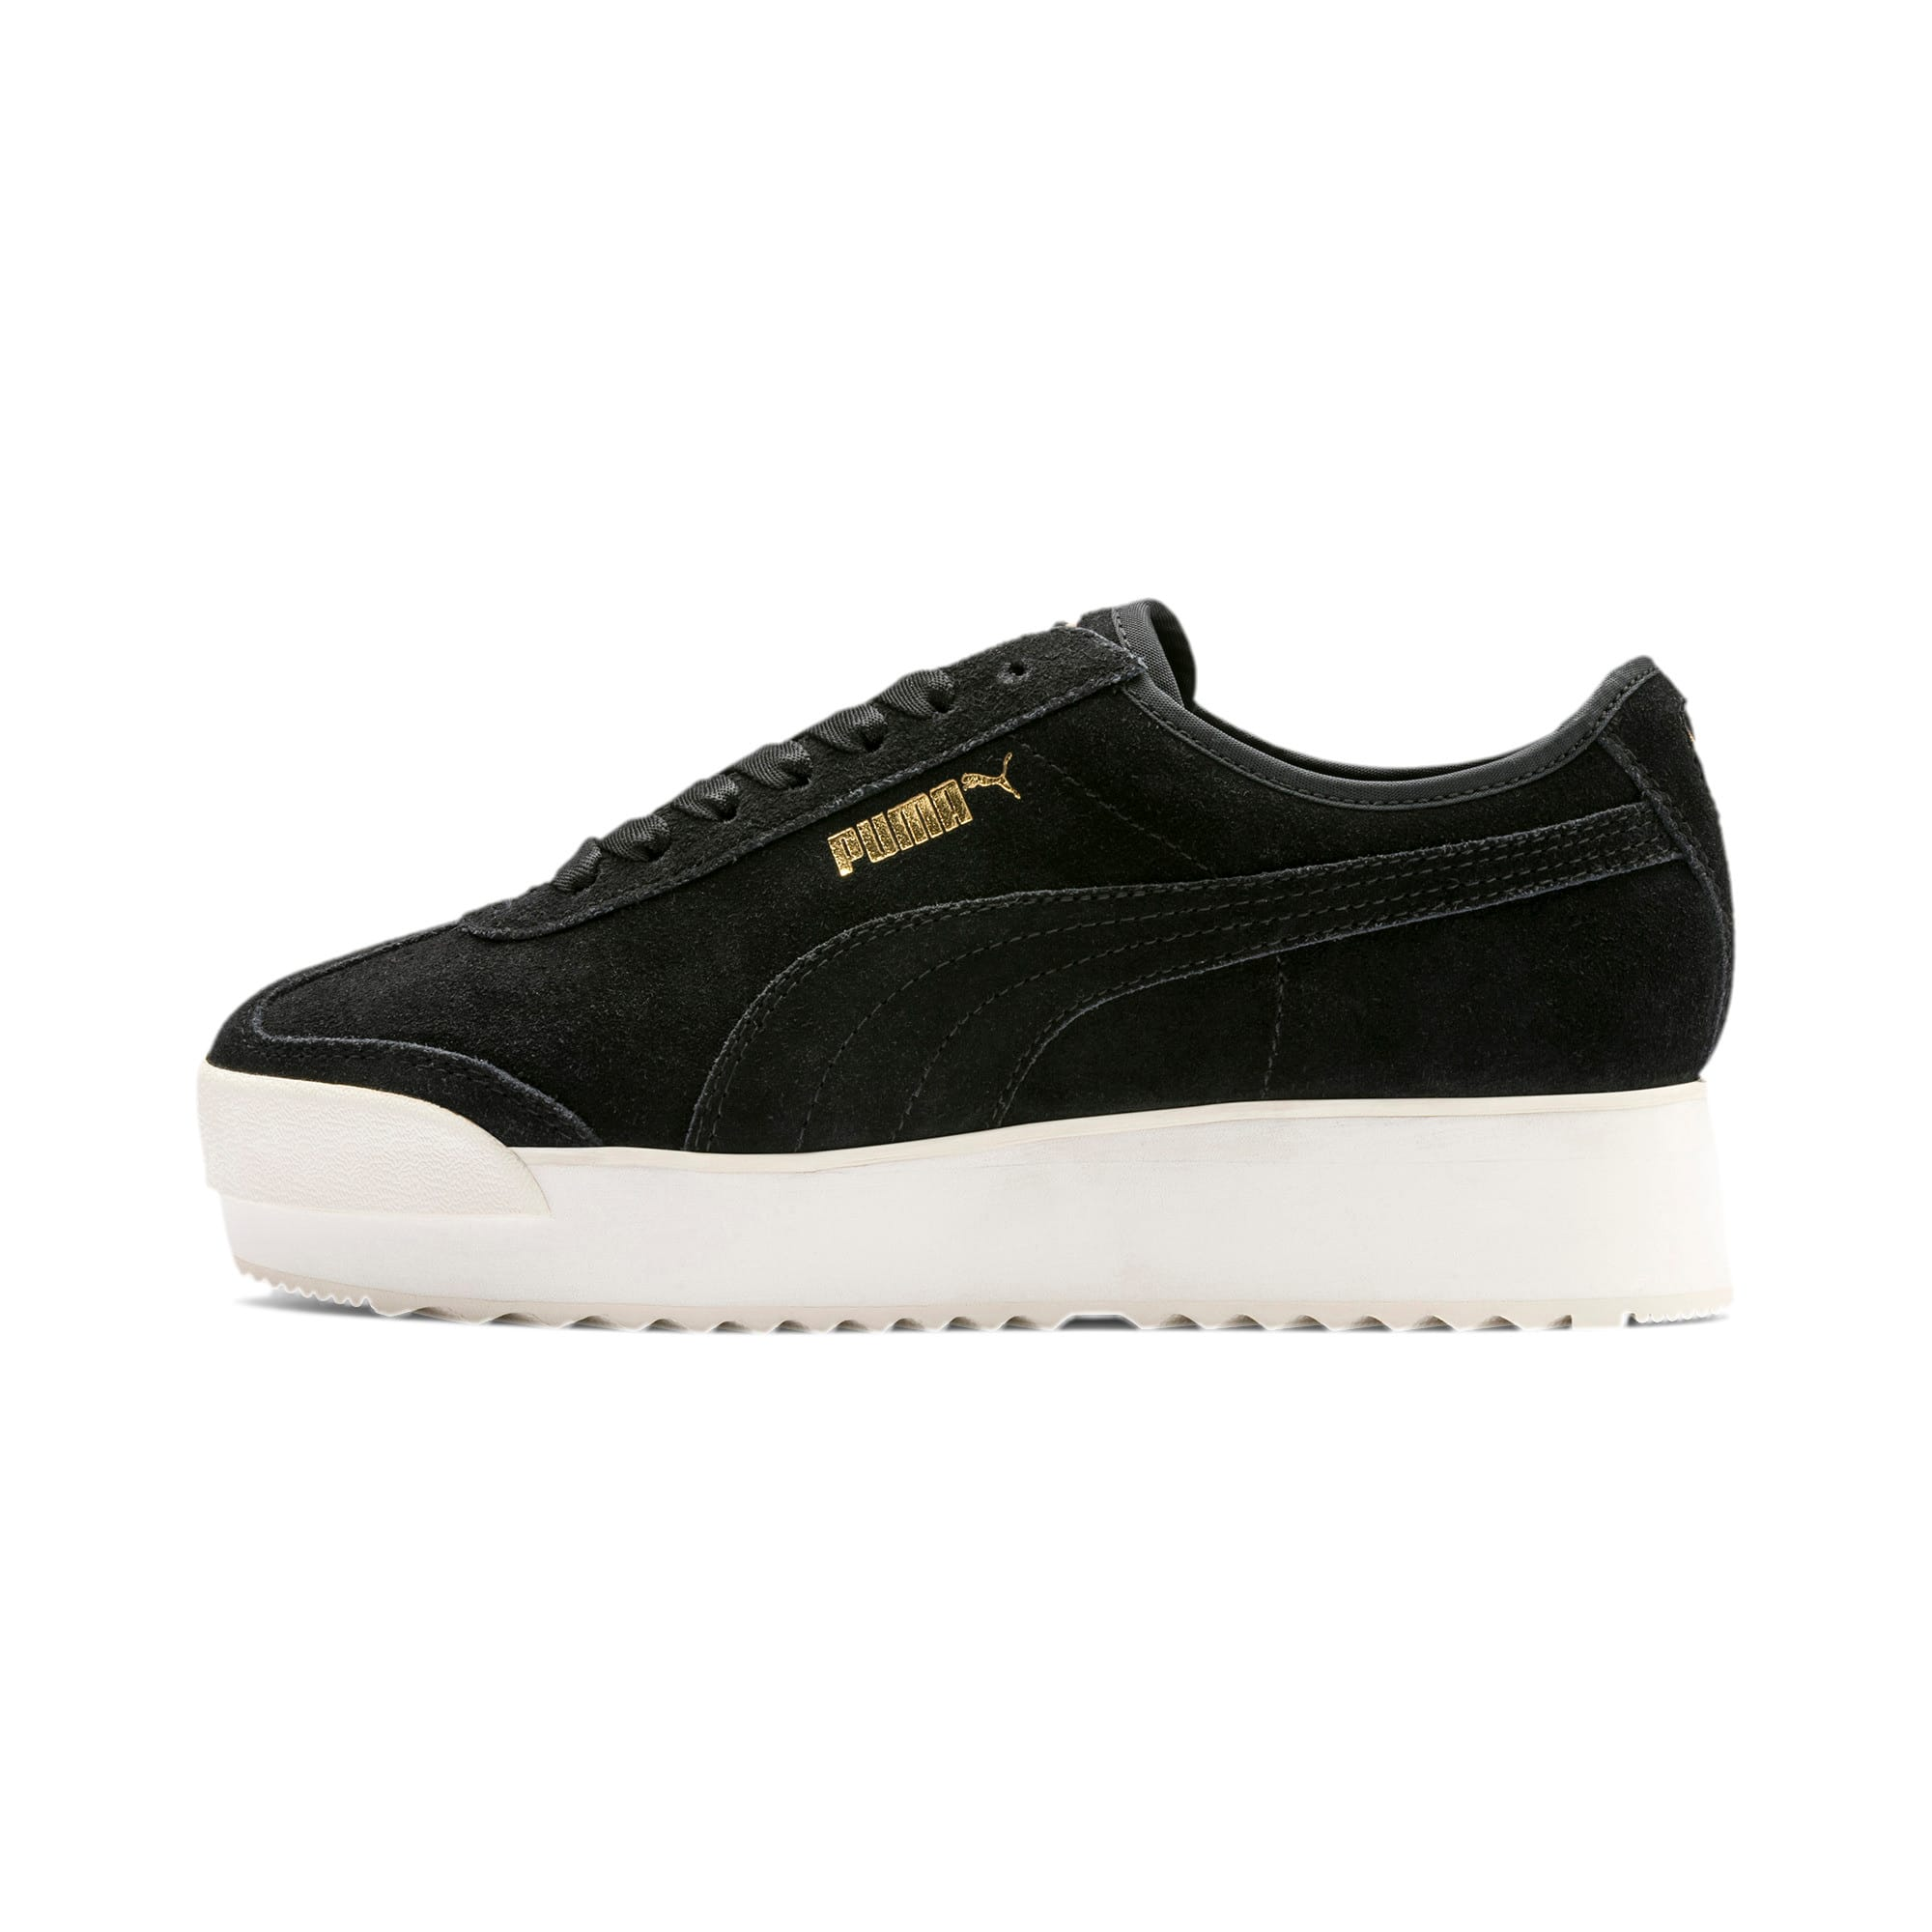 Thumbnail 1 of Roma Amor Suede Women's Sneakers, Puma Black-Puma Team Gold, medium